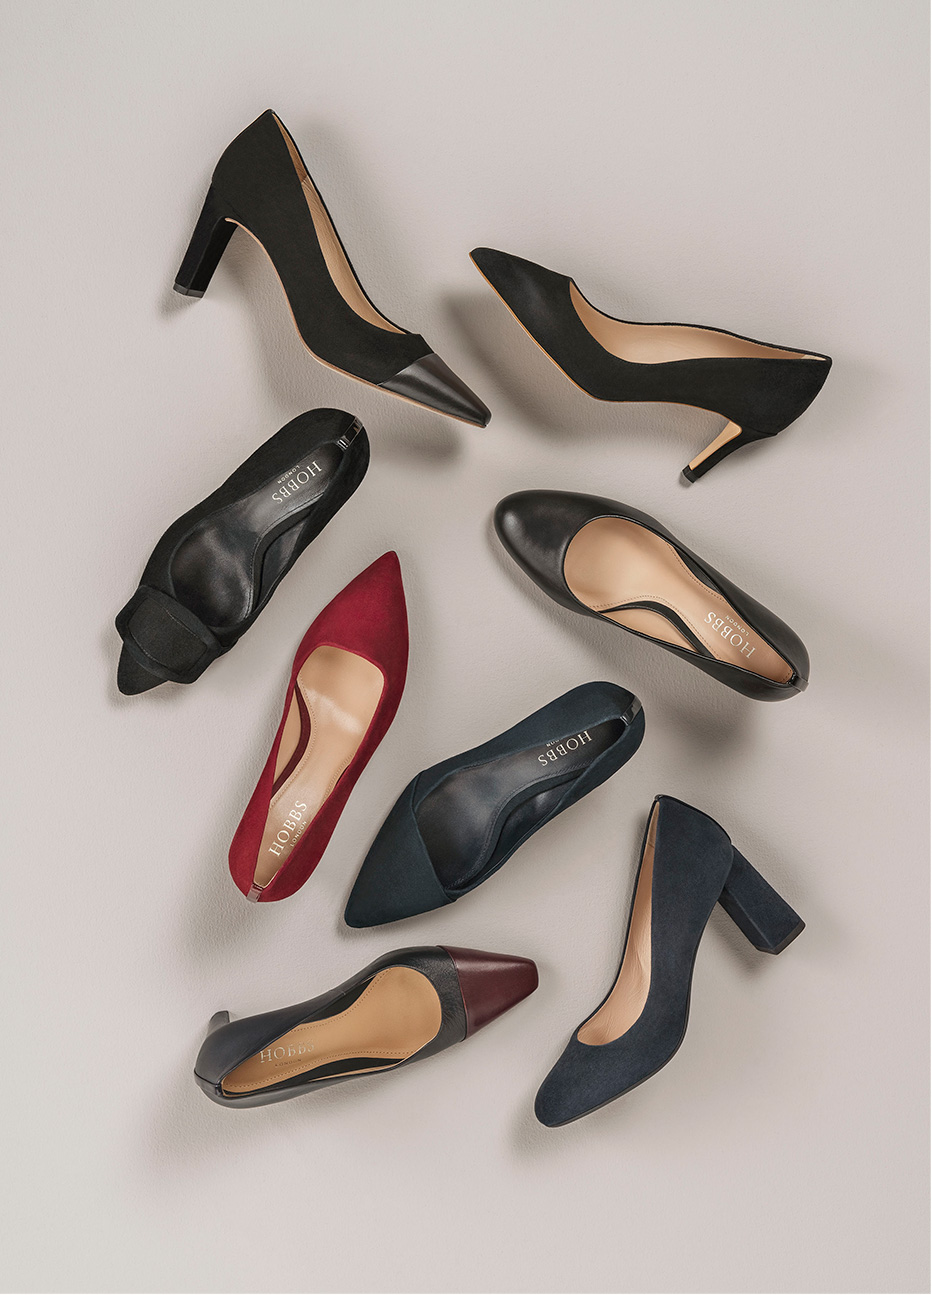 Hobbs new Autumn WInter collection of premium leather and suede court shoes